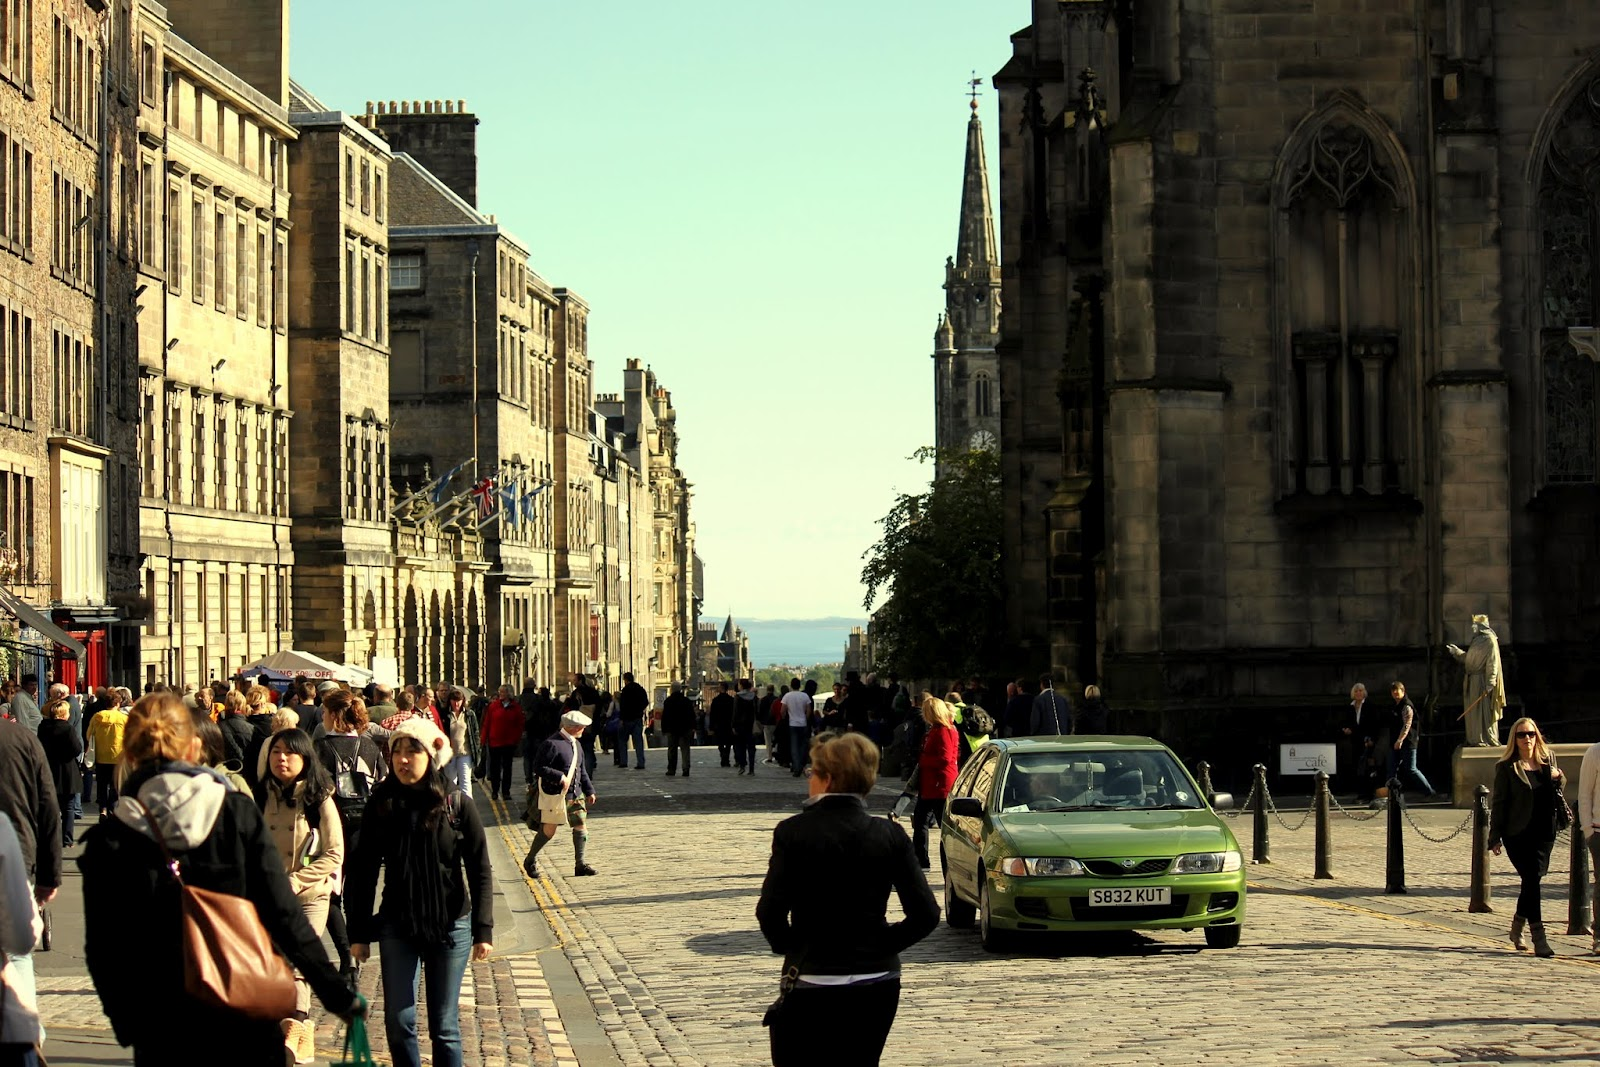 Walking down the Royal Mile in Edinburgh